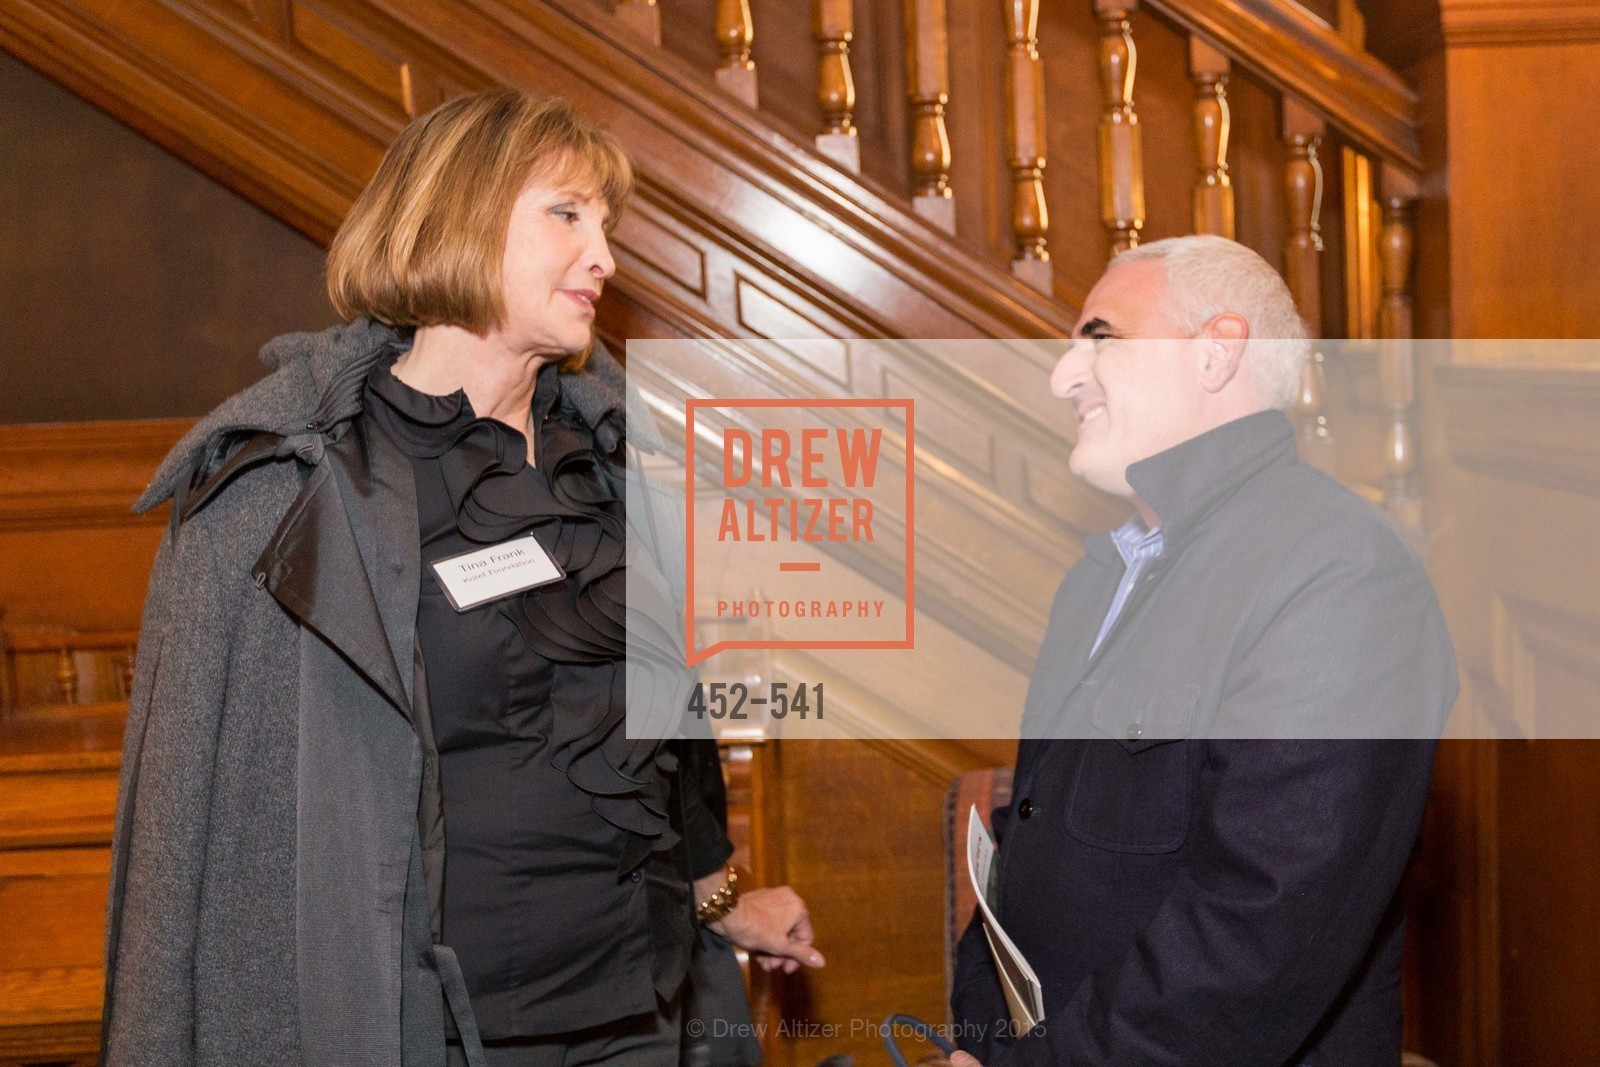 Tina Frank, Adam Hirschfelder, Ceremony Inaugurating the Campaign for San Francisco Heritage & Haas-Lilienthal House, Haas-Lilienthal House. 2007 Franklin Street, November 18th, 2015